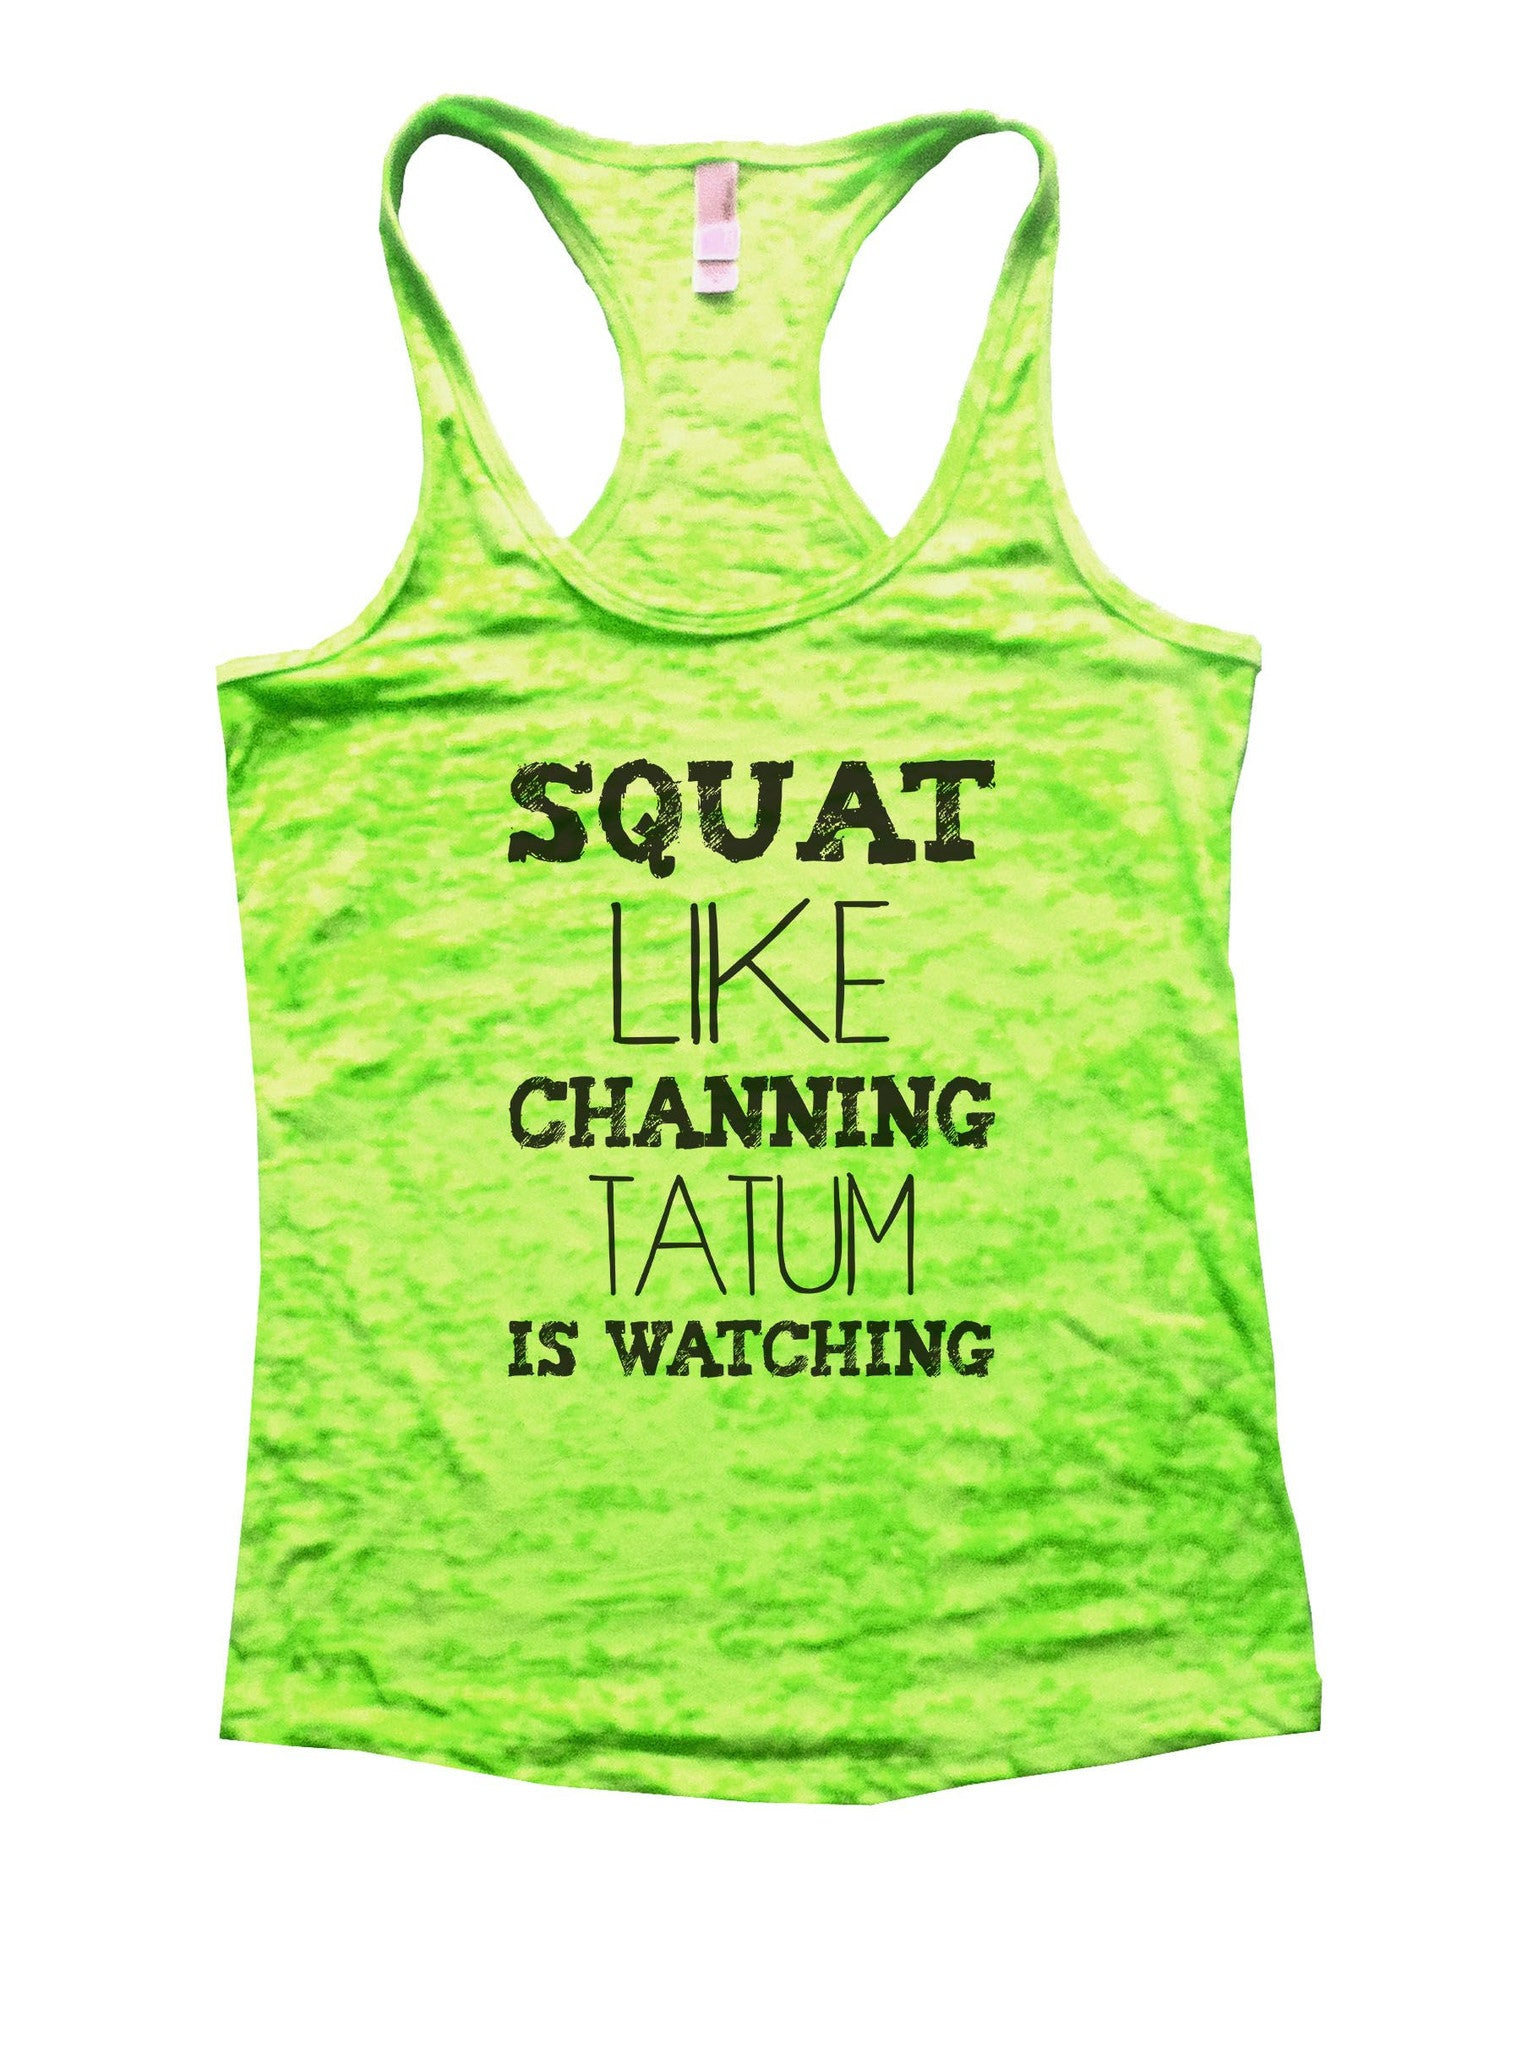 Squat Like Channing Tatum Is Watching Burnout Tank Top By BurnoutTankTops.com - 901 - Funny Shirts Tank Tops Burnouts and Triblends  - 2